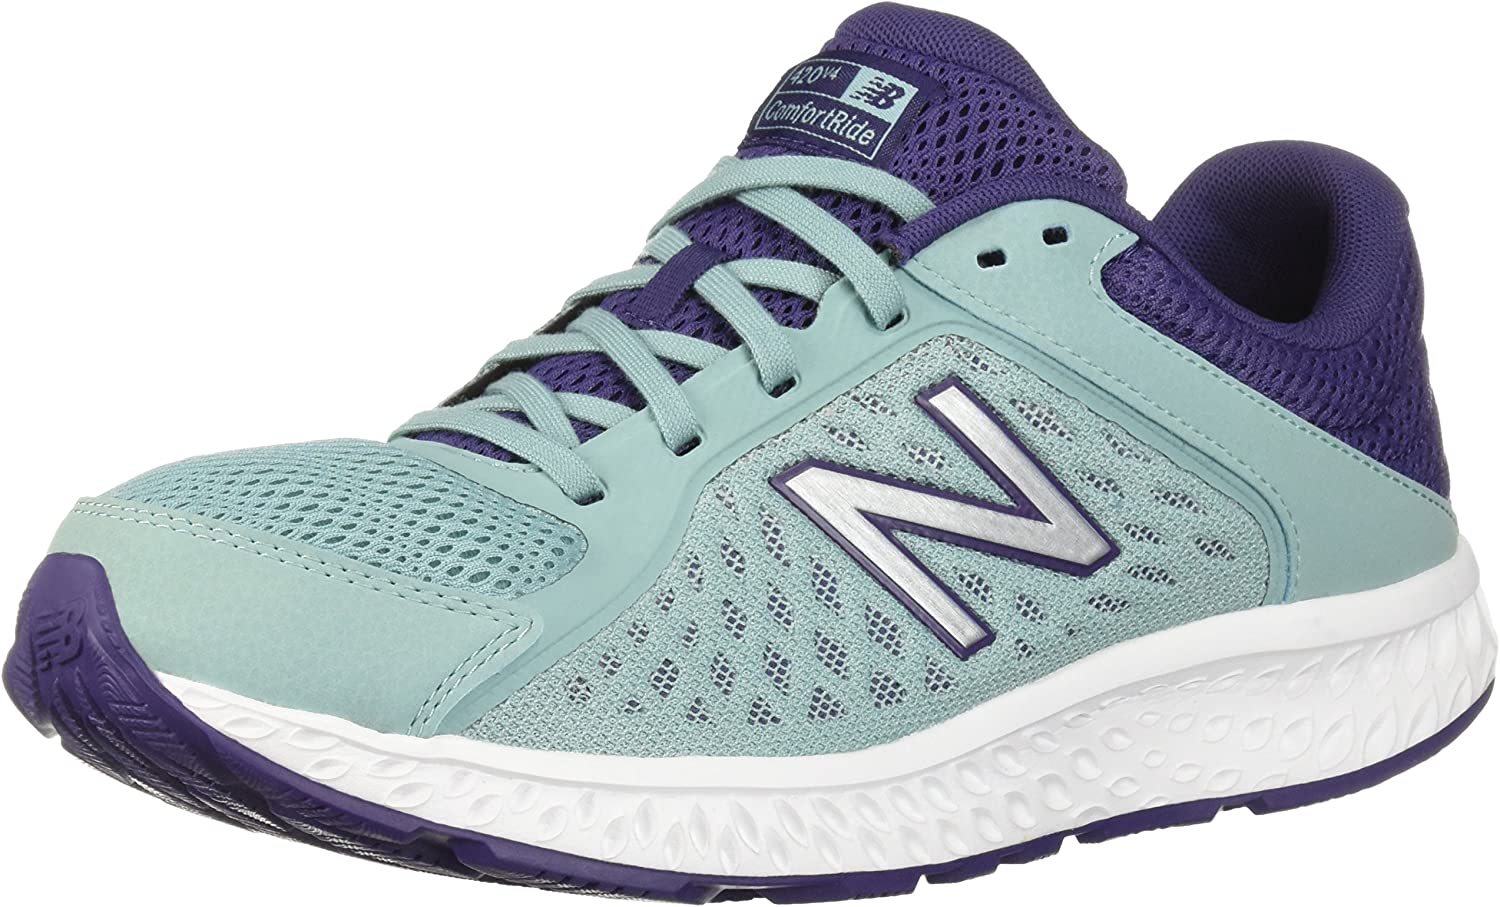 New Balance Women's 420v4 Cushioning Running shoes